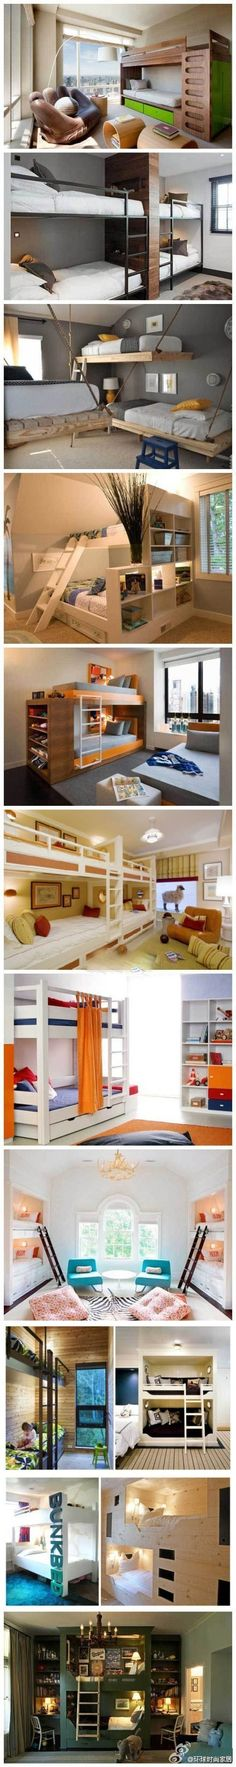 double deck bed designs!